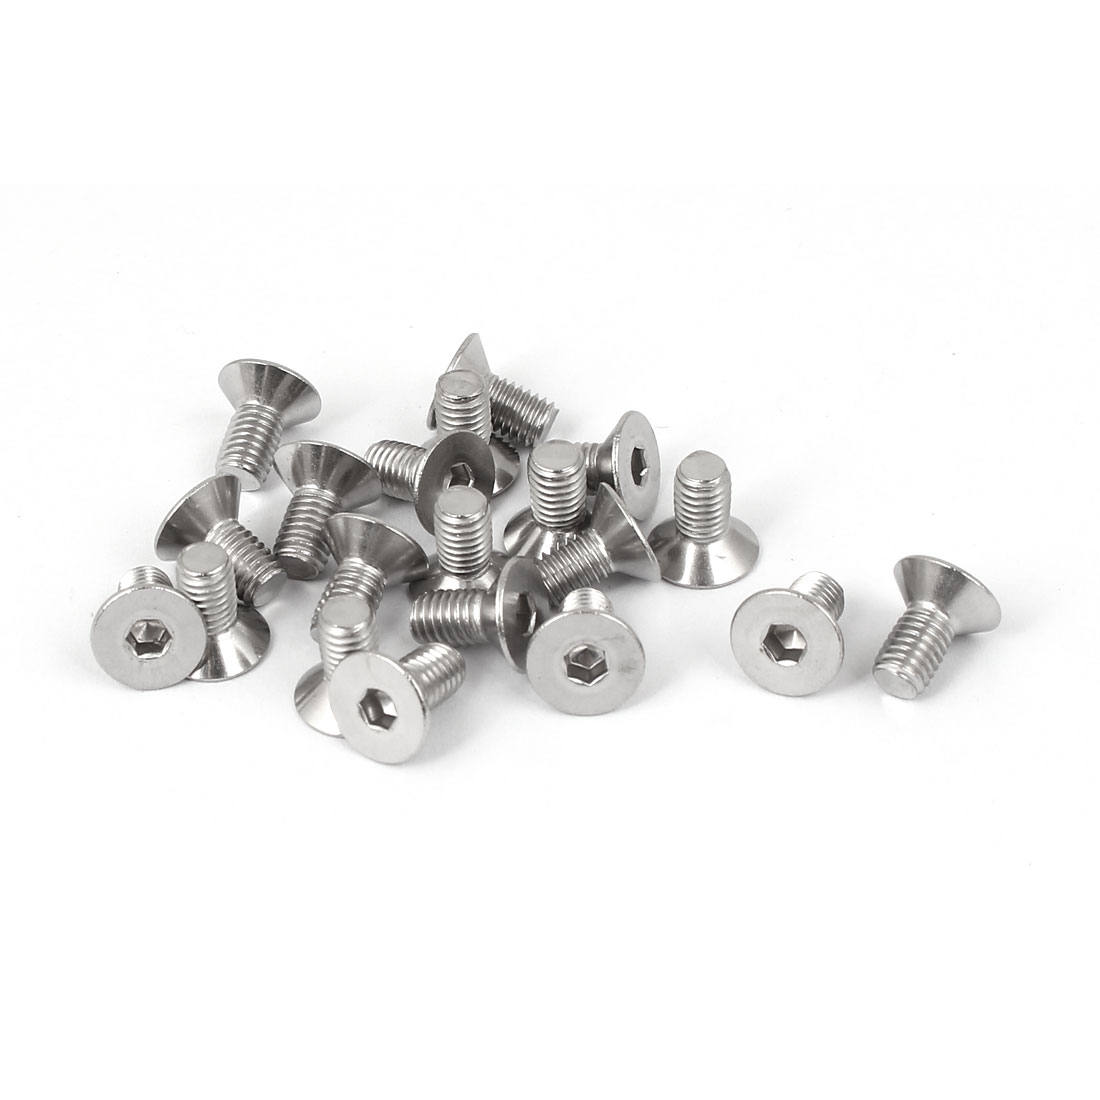 M5x10mm Stainless Steel Hex Socket Flat Head Countersunk Bolts Screw 20pcs